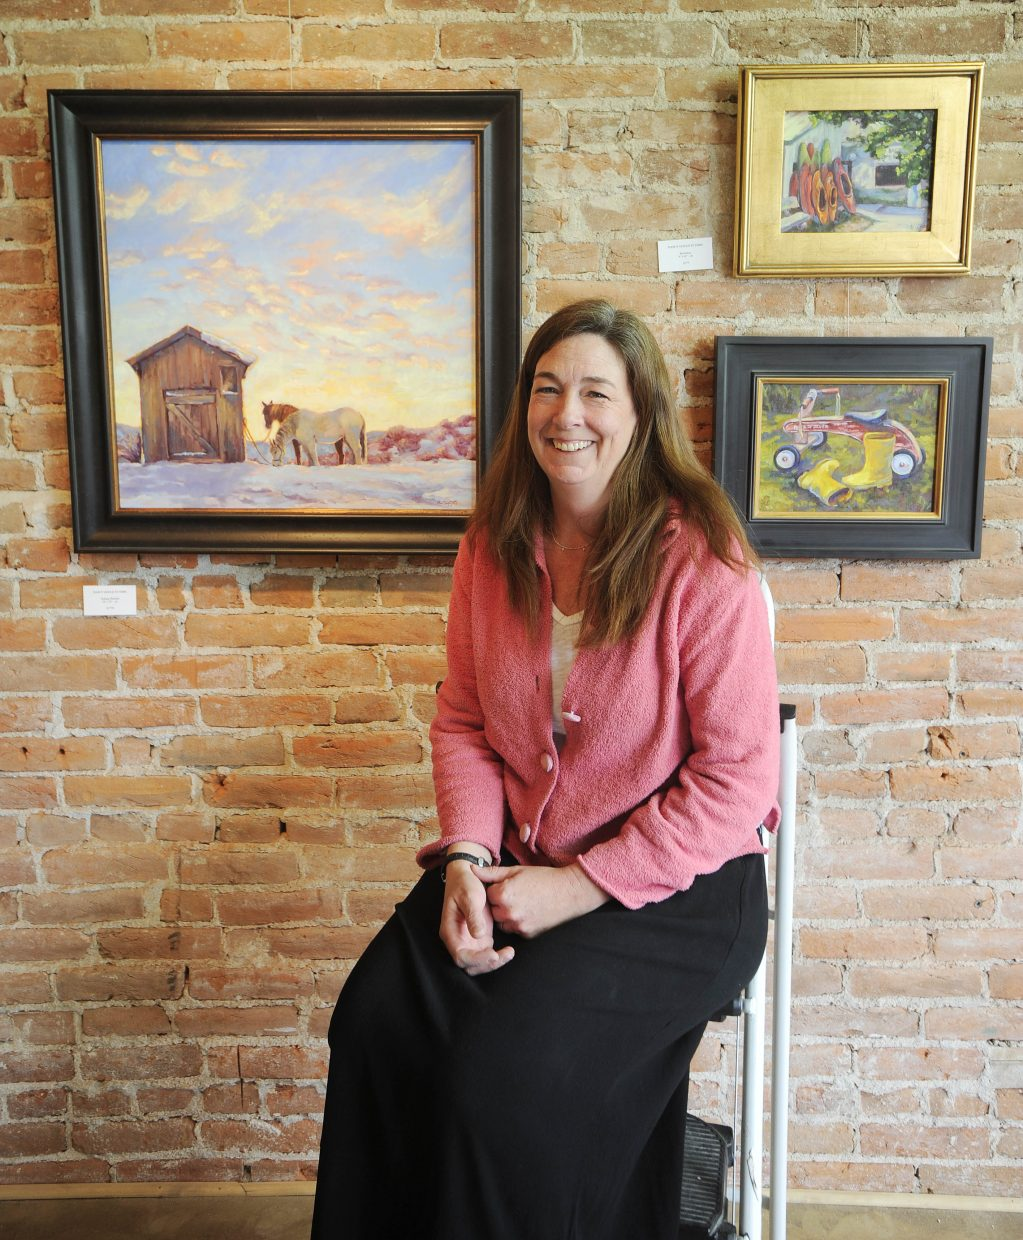 Dancy Gould St. John's work focuses on Steamboat scenes.